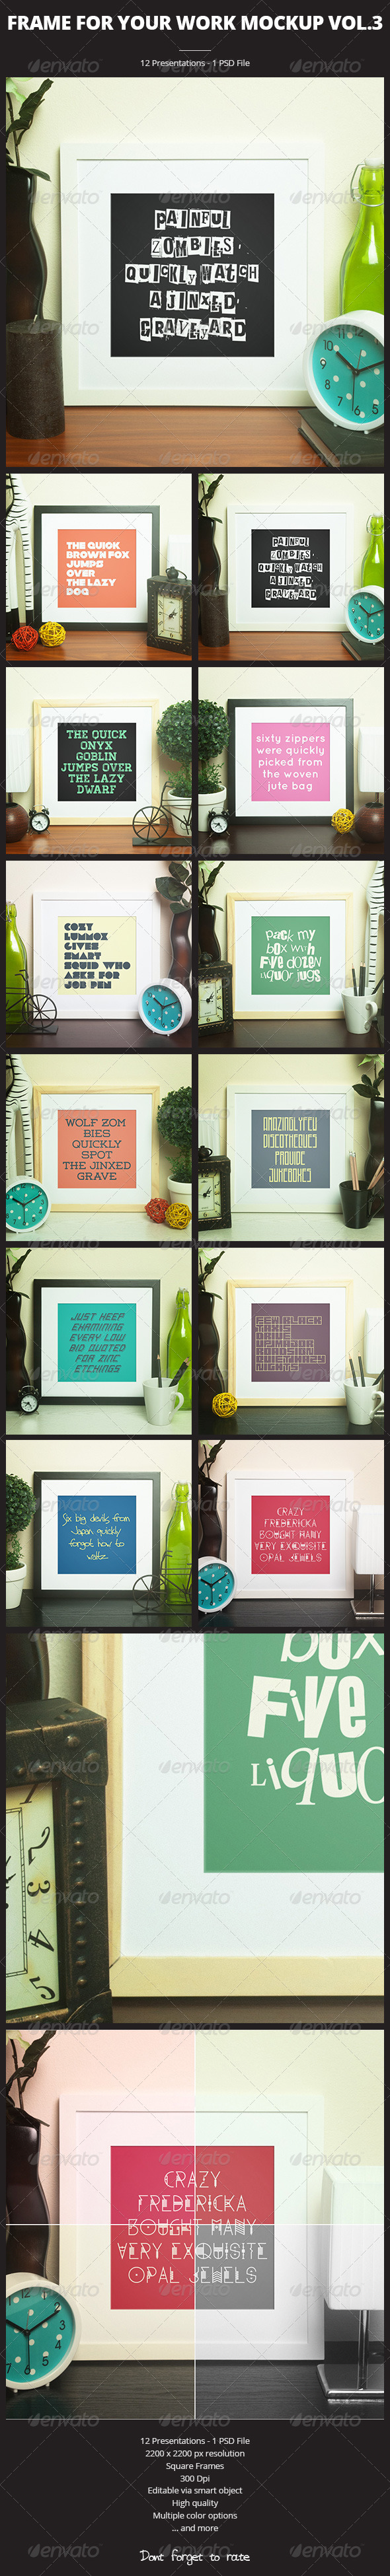 GraphicRiver Frame For Your Work vol.3 6662289